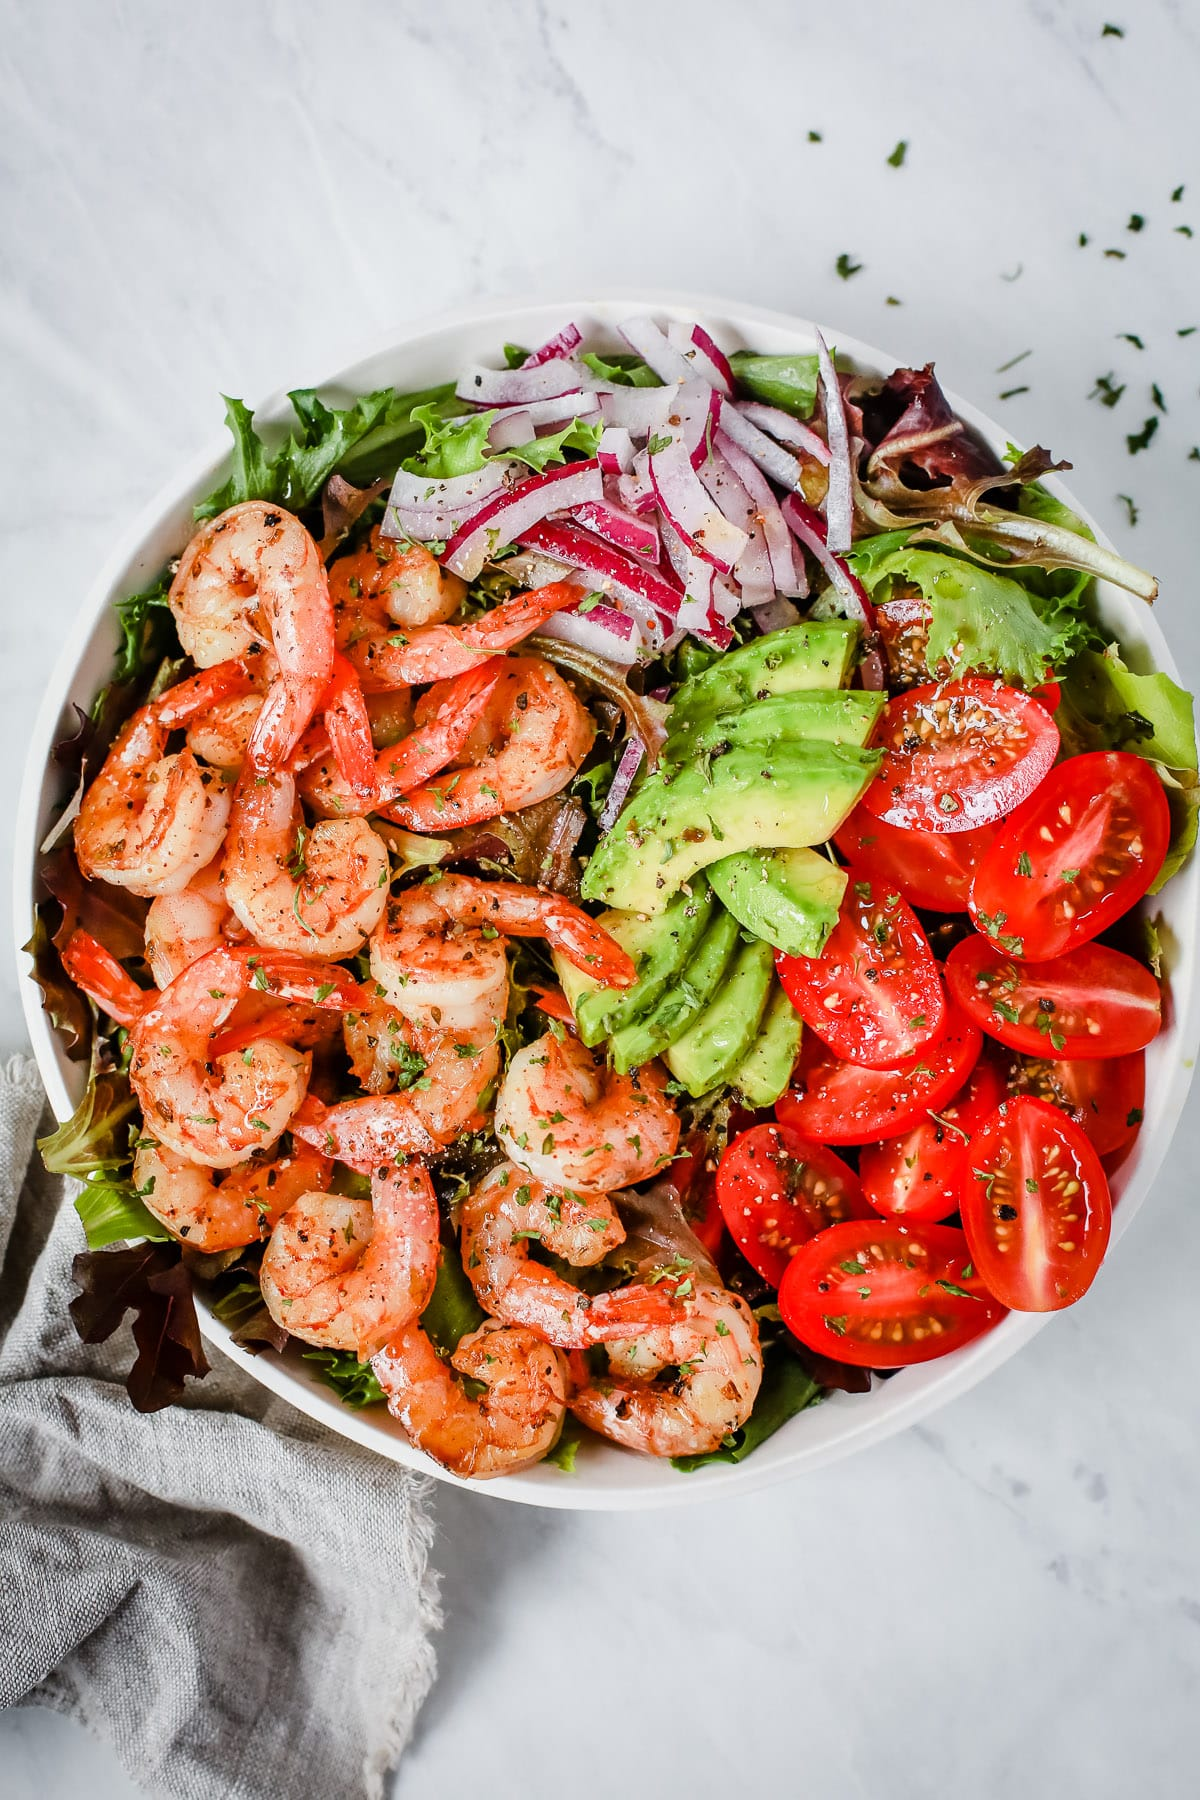 A bowl with shrimp, tomatoes, avocados, onions, and greens.